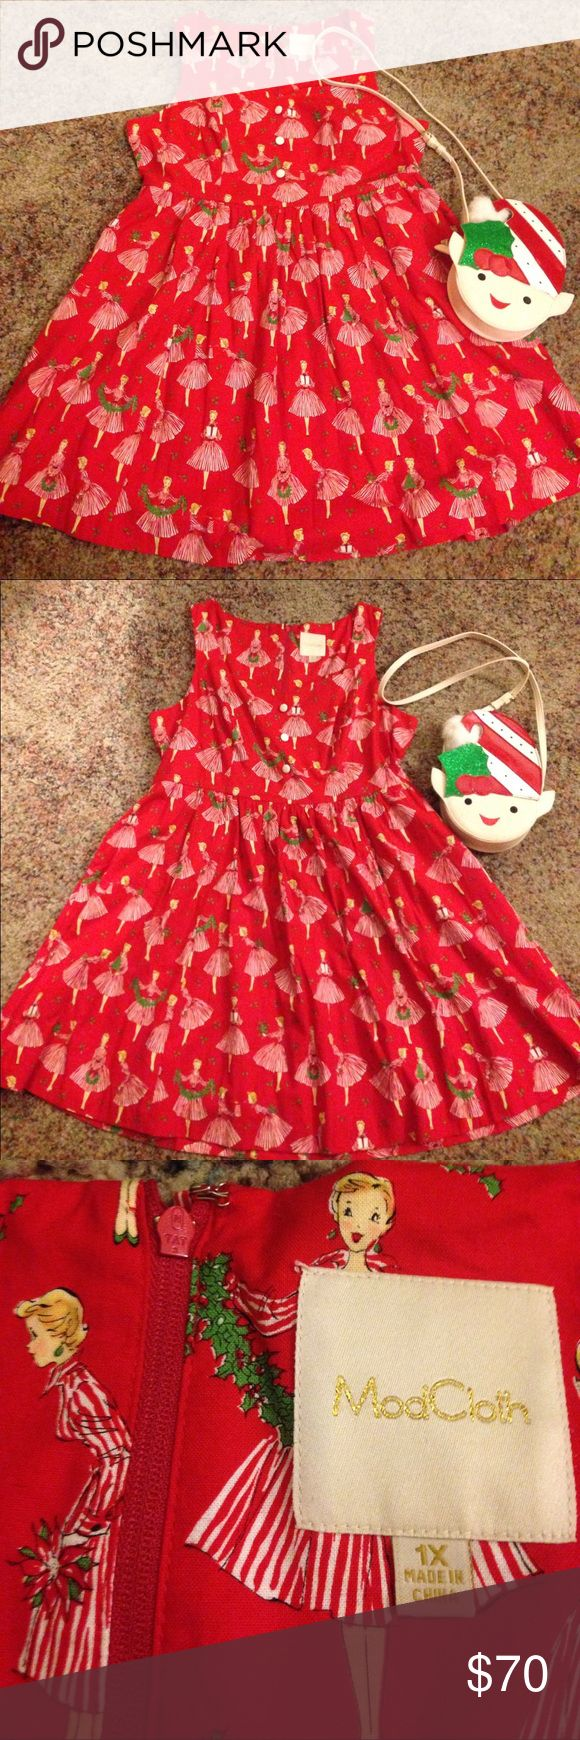 "Size 1x Christmas Print Dress EUC-only worn once. Has pockets. The clasp on one side is missing that's how it arrived directly from ModCloth. It was sold on there as ""Biking Through Brussels Dress in Holiday"" Approximate flat Measurements: Bust: 22in Waist: 19in Length: 37in Will not come with belt since I wore the belt the most with other dresses and has signs of wear. Modcloth Dresses"